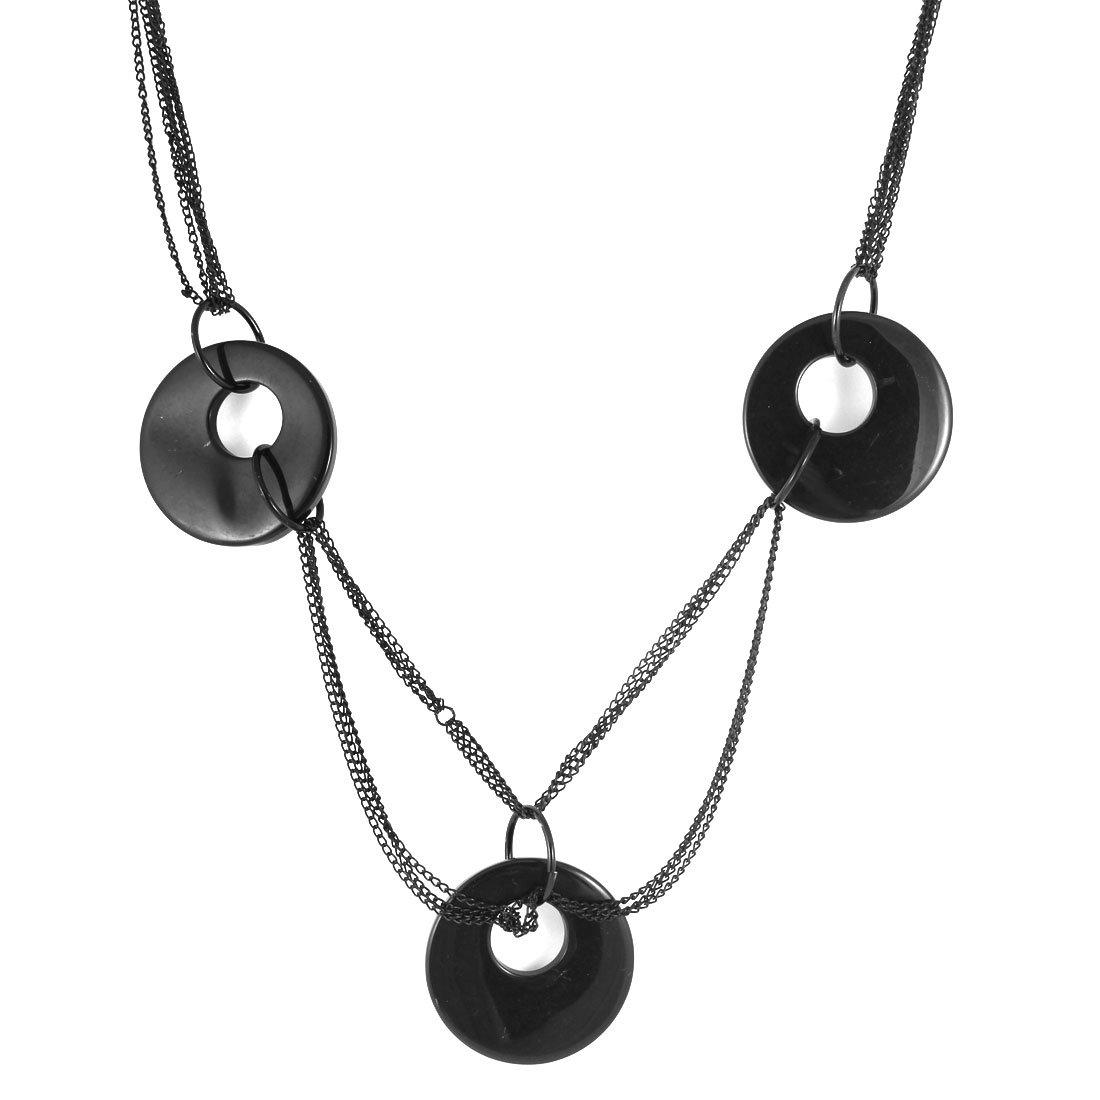 Lady Woman Black Plastic Round Pendant 6 Alloy Chains Sweater Necklace